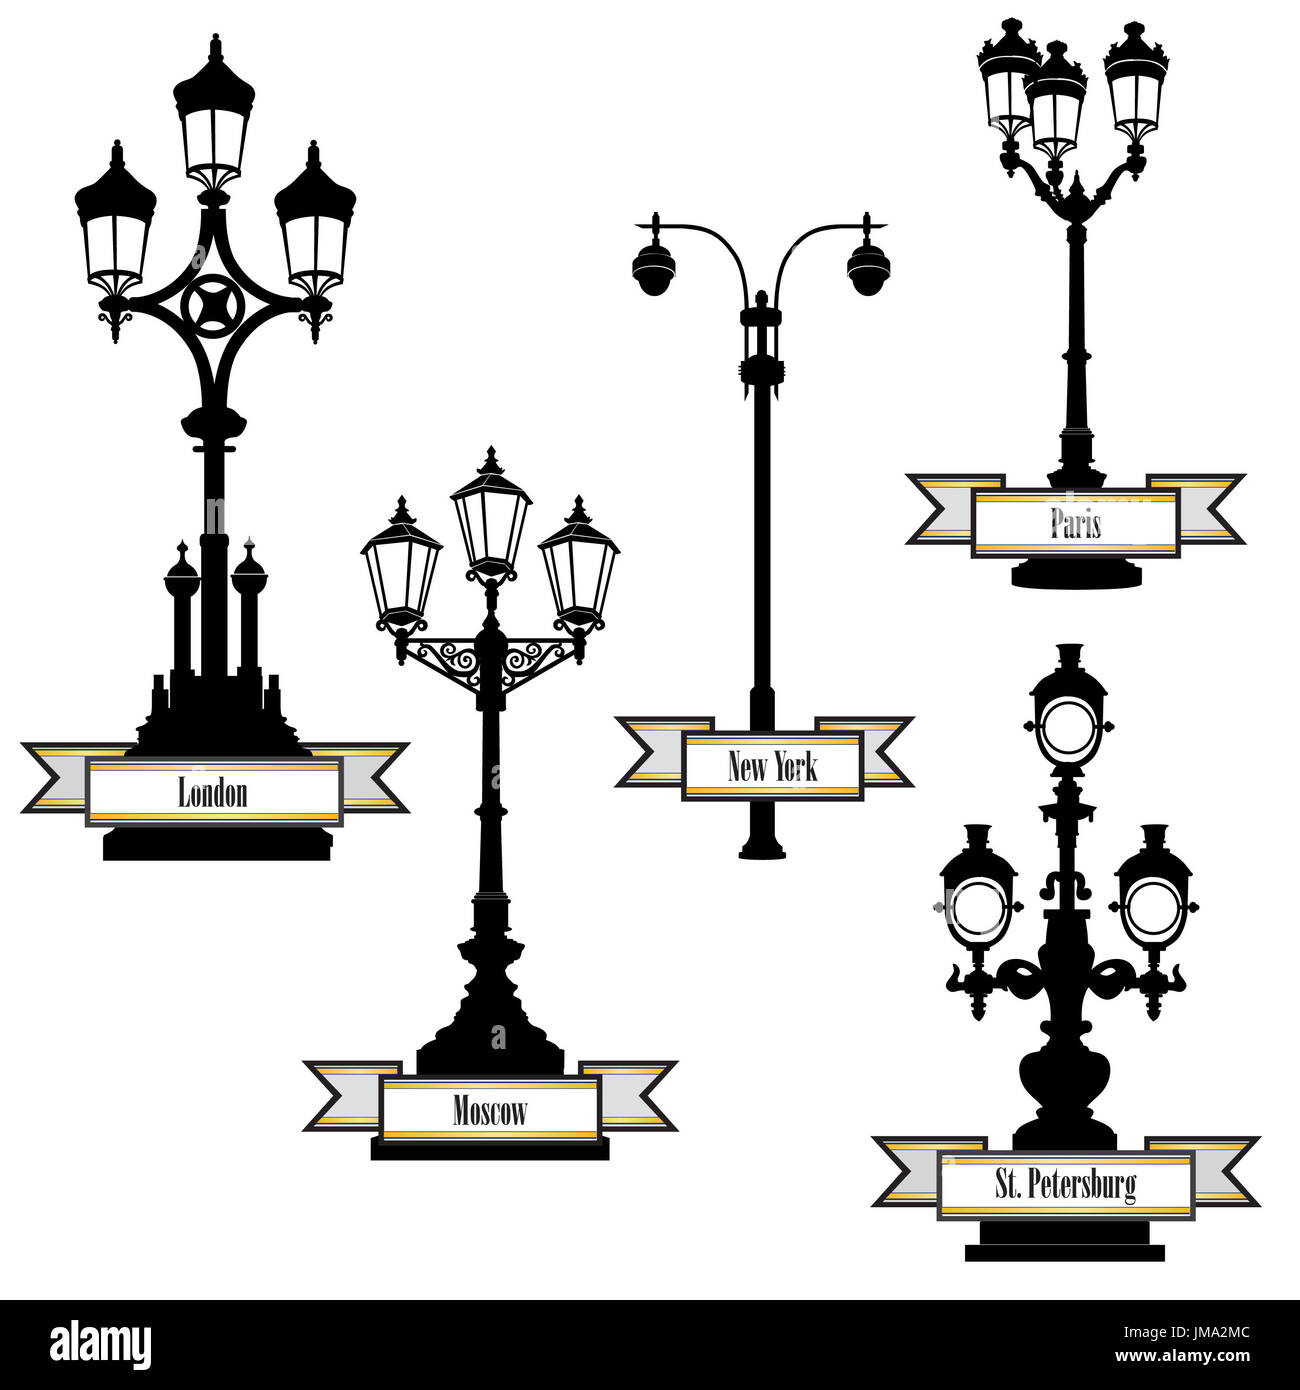 Street lamp label set. Street lights of London, PAris, New-York, Moscow, St Petersburg retro collection. Travel the world icon set. - Stock Image